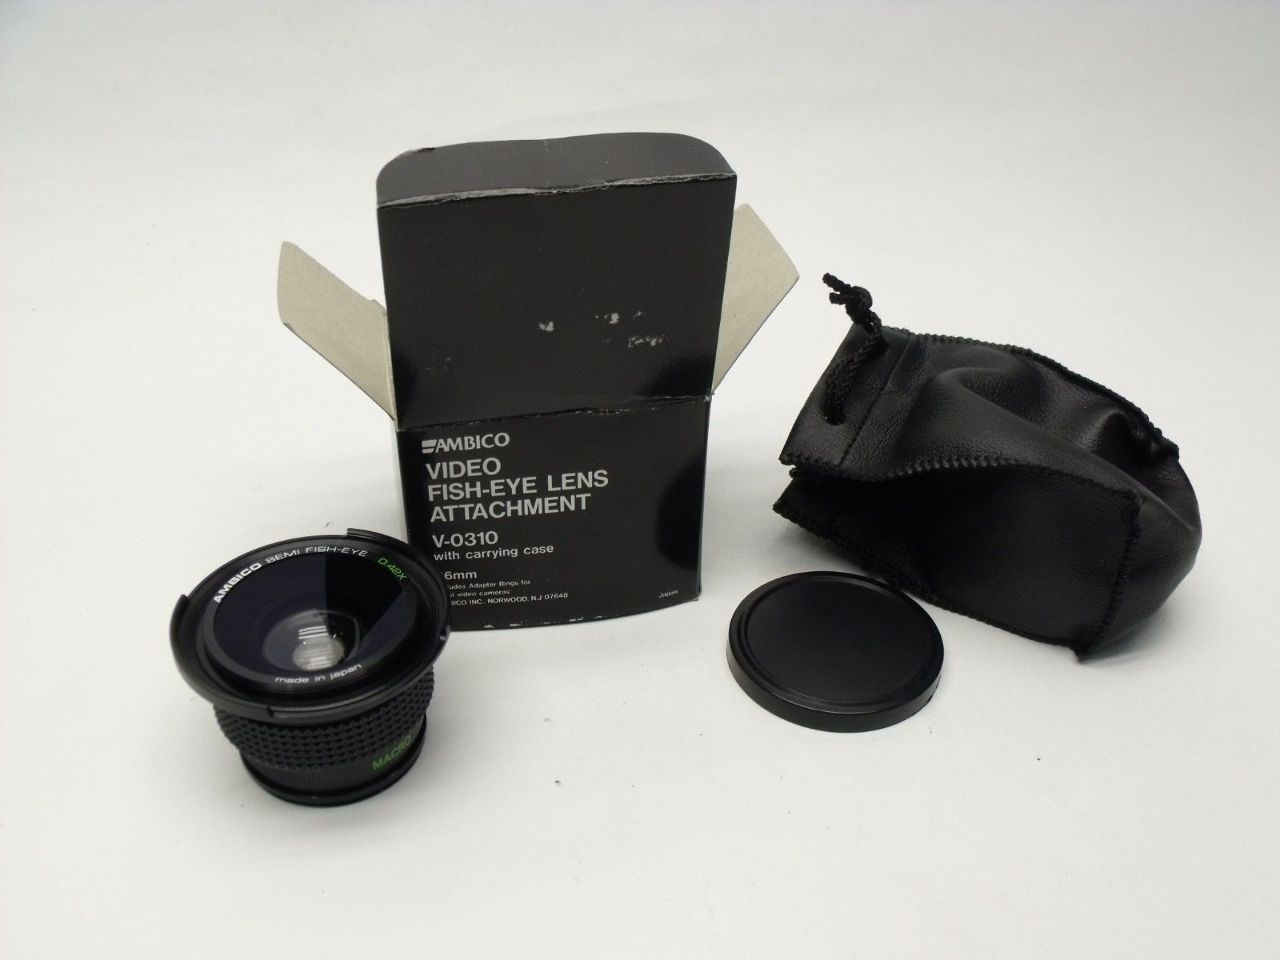 New Ambico Video FishEye V-0310 46mm LENS Attachment + Carrying Case